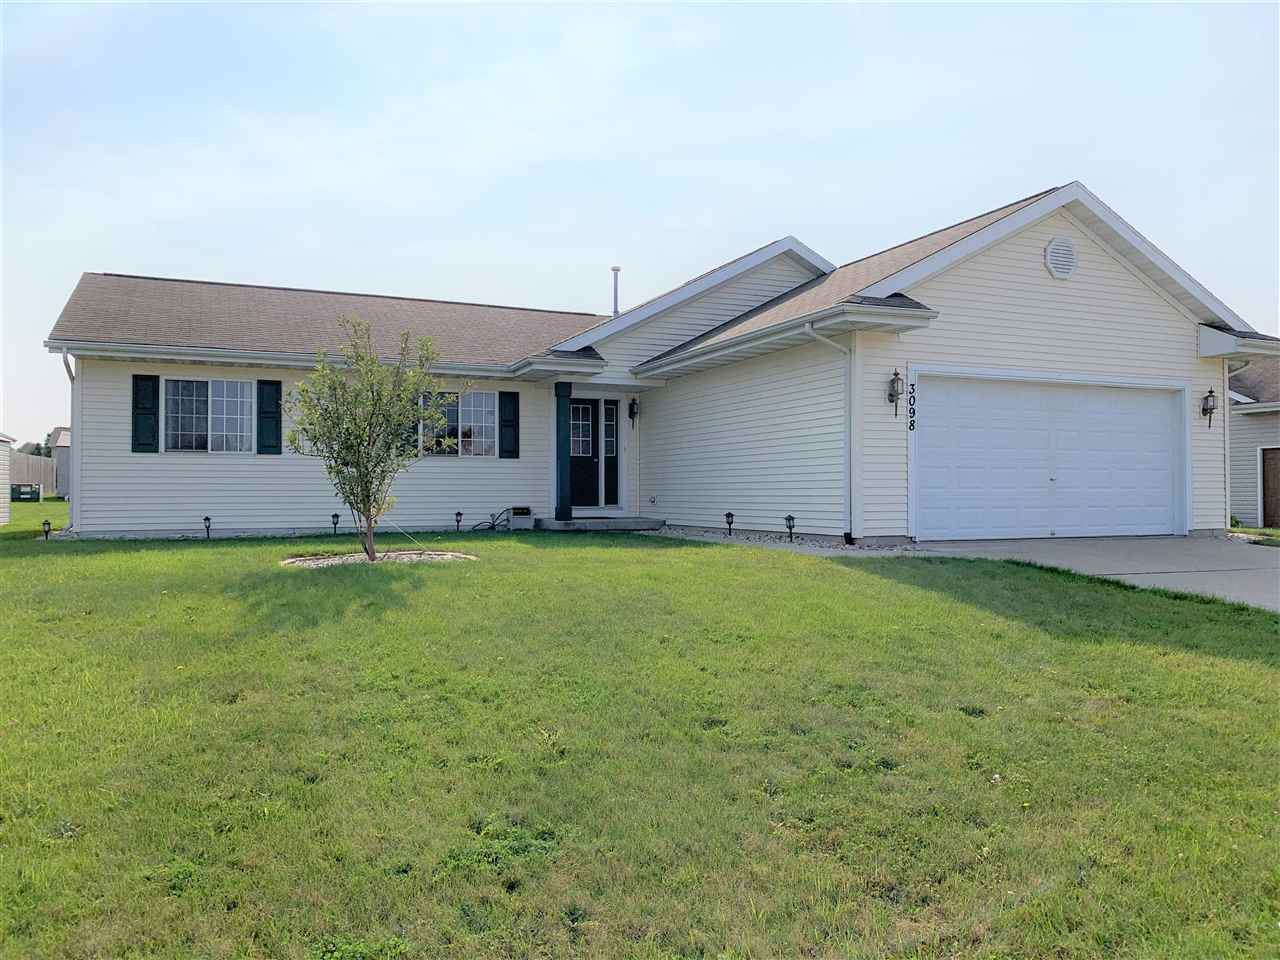 3098 N Wright Rd, Janesville, WI 53546 - #: 1892898